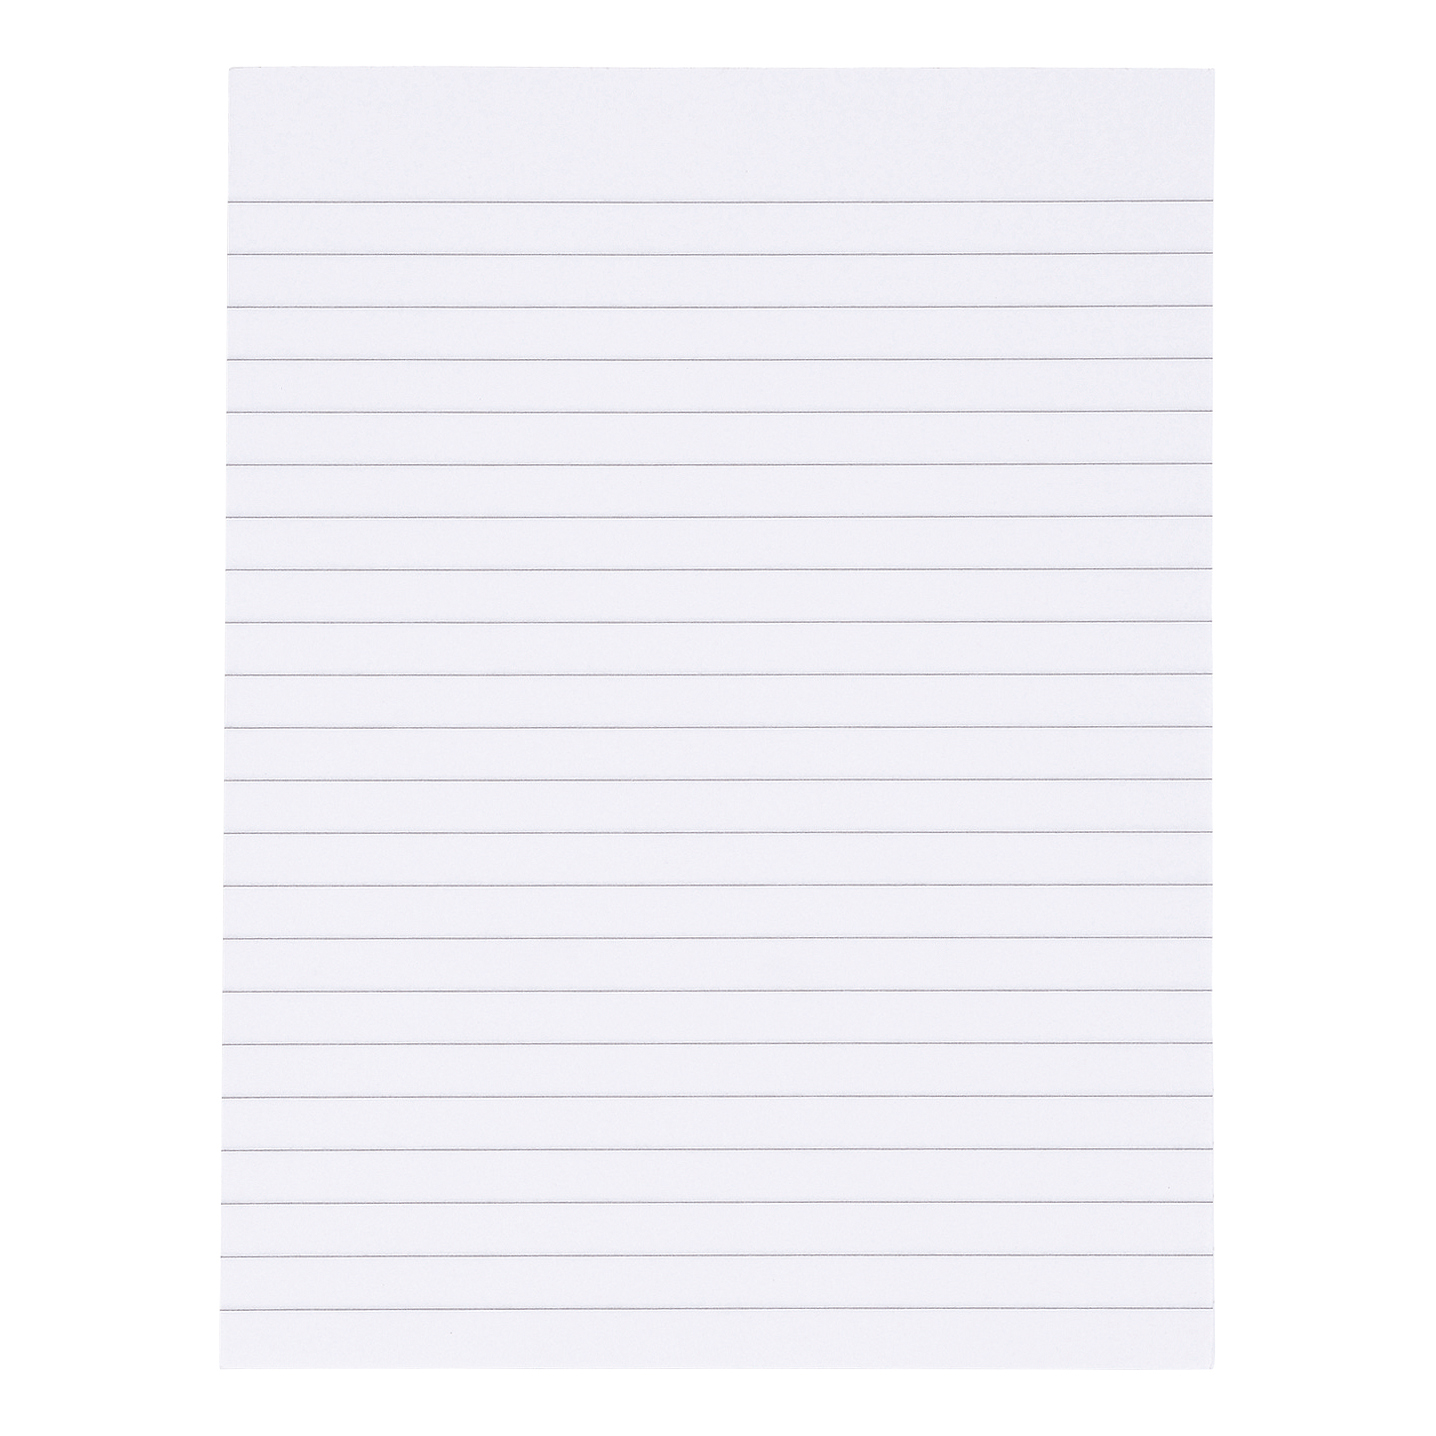 Memo Pads 5 Star Value Memo Pad Headbound 60gsm Ruled 160pp 150x200mm White Paper Pack 10